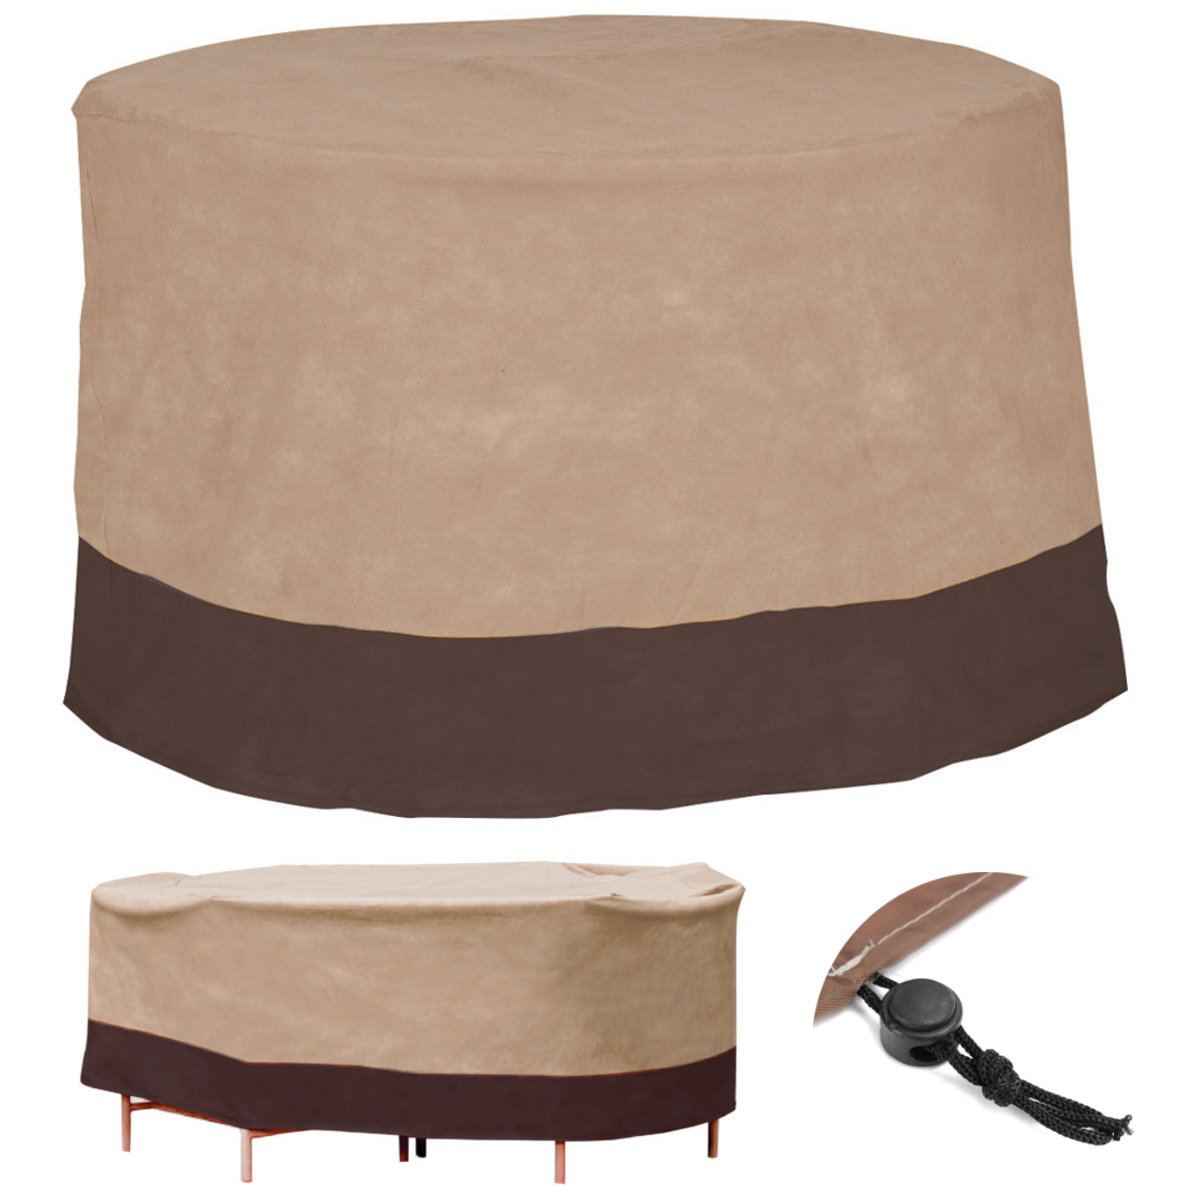 Brown Table Cover Waterproof Table Runner Outdoor Patio Round Table Cover Home Textiles Furniture Protection Cover 48 Inch(China (Mainland))